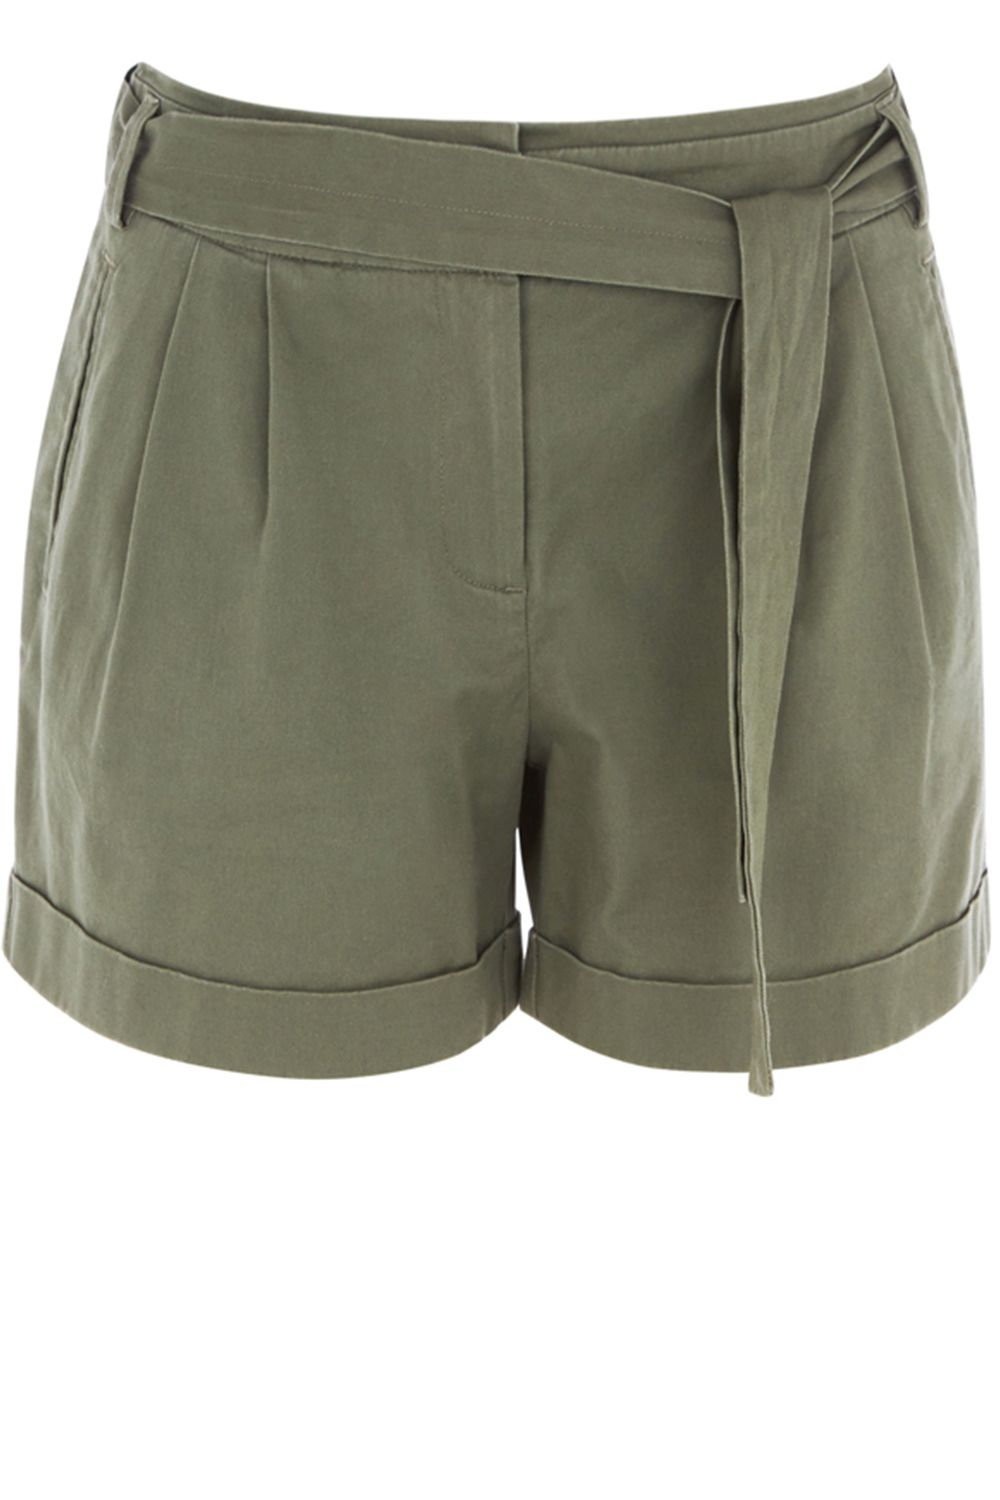 Oasis Casual Shorts Khaki